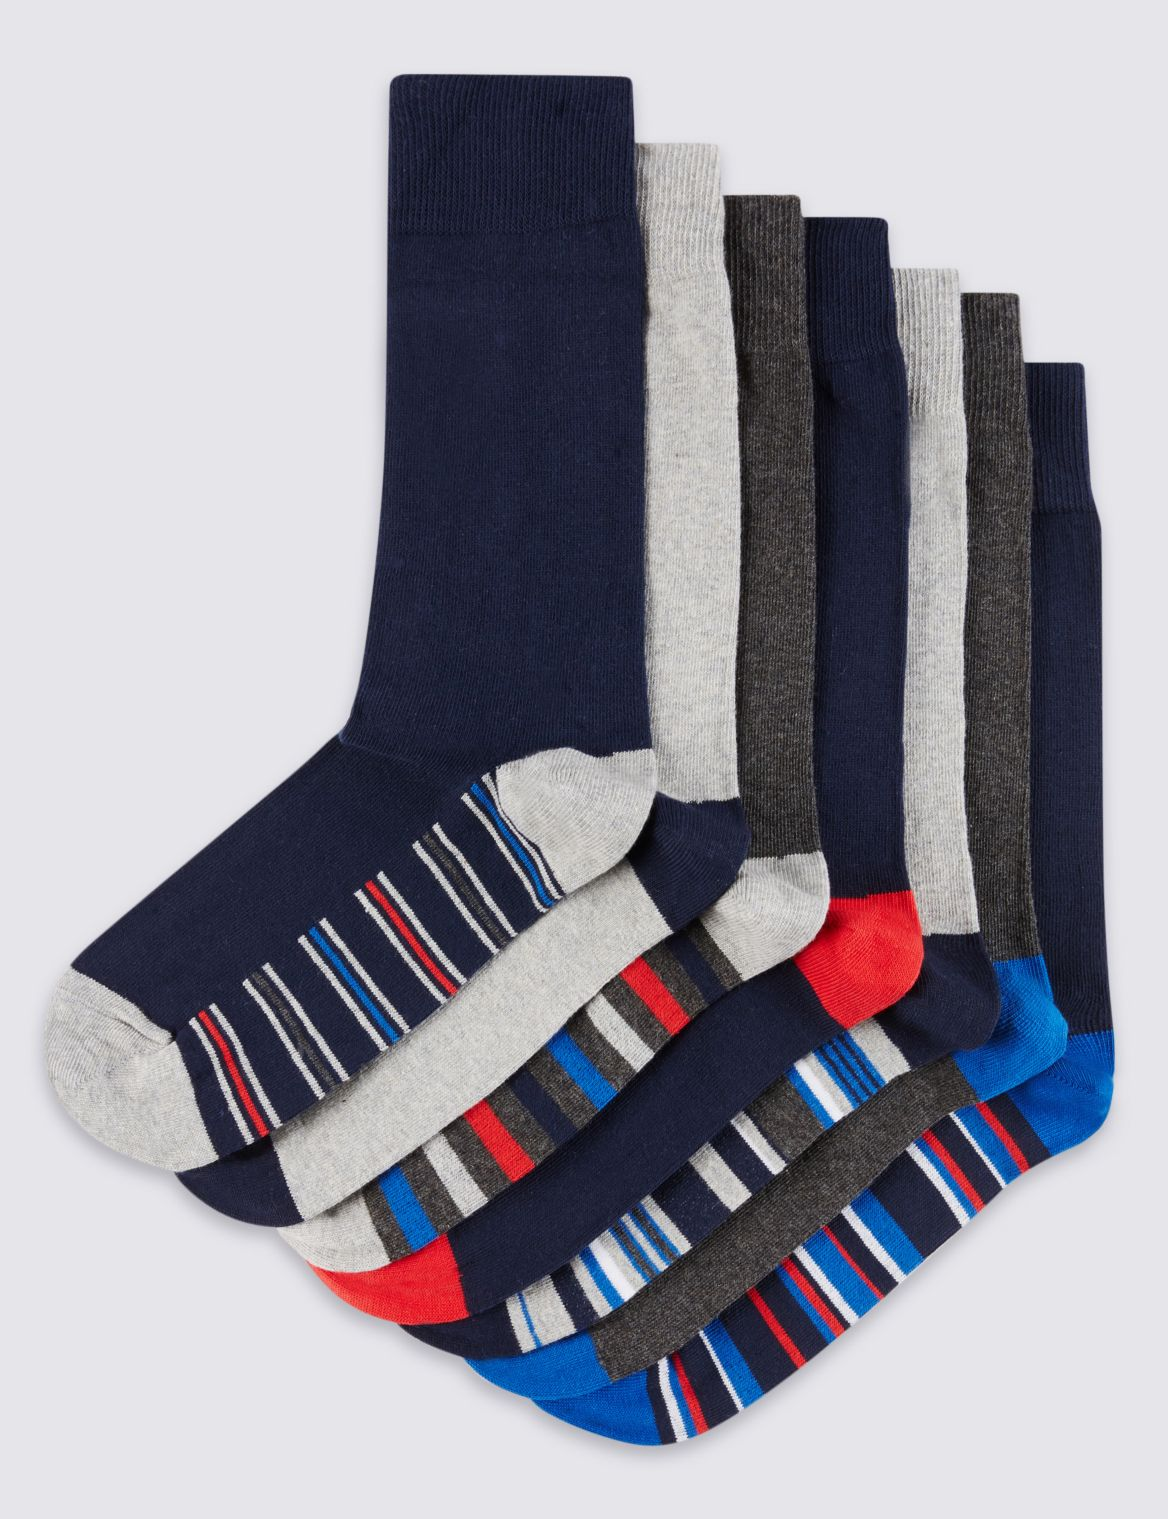 7 Pairs of Freshfeet™ Stay Soft Cotton Rich Assorted Socks with Silver Technology navy mix